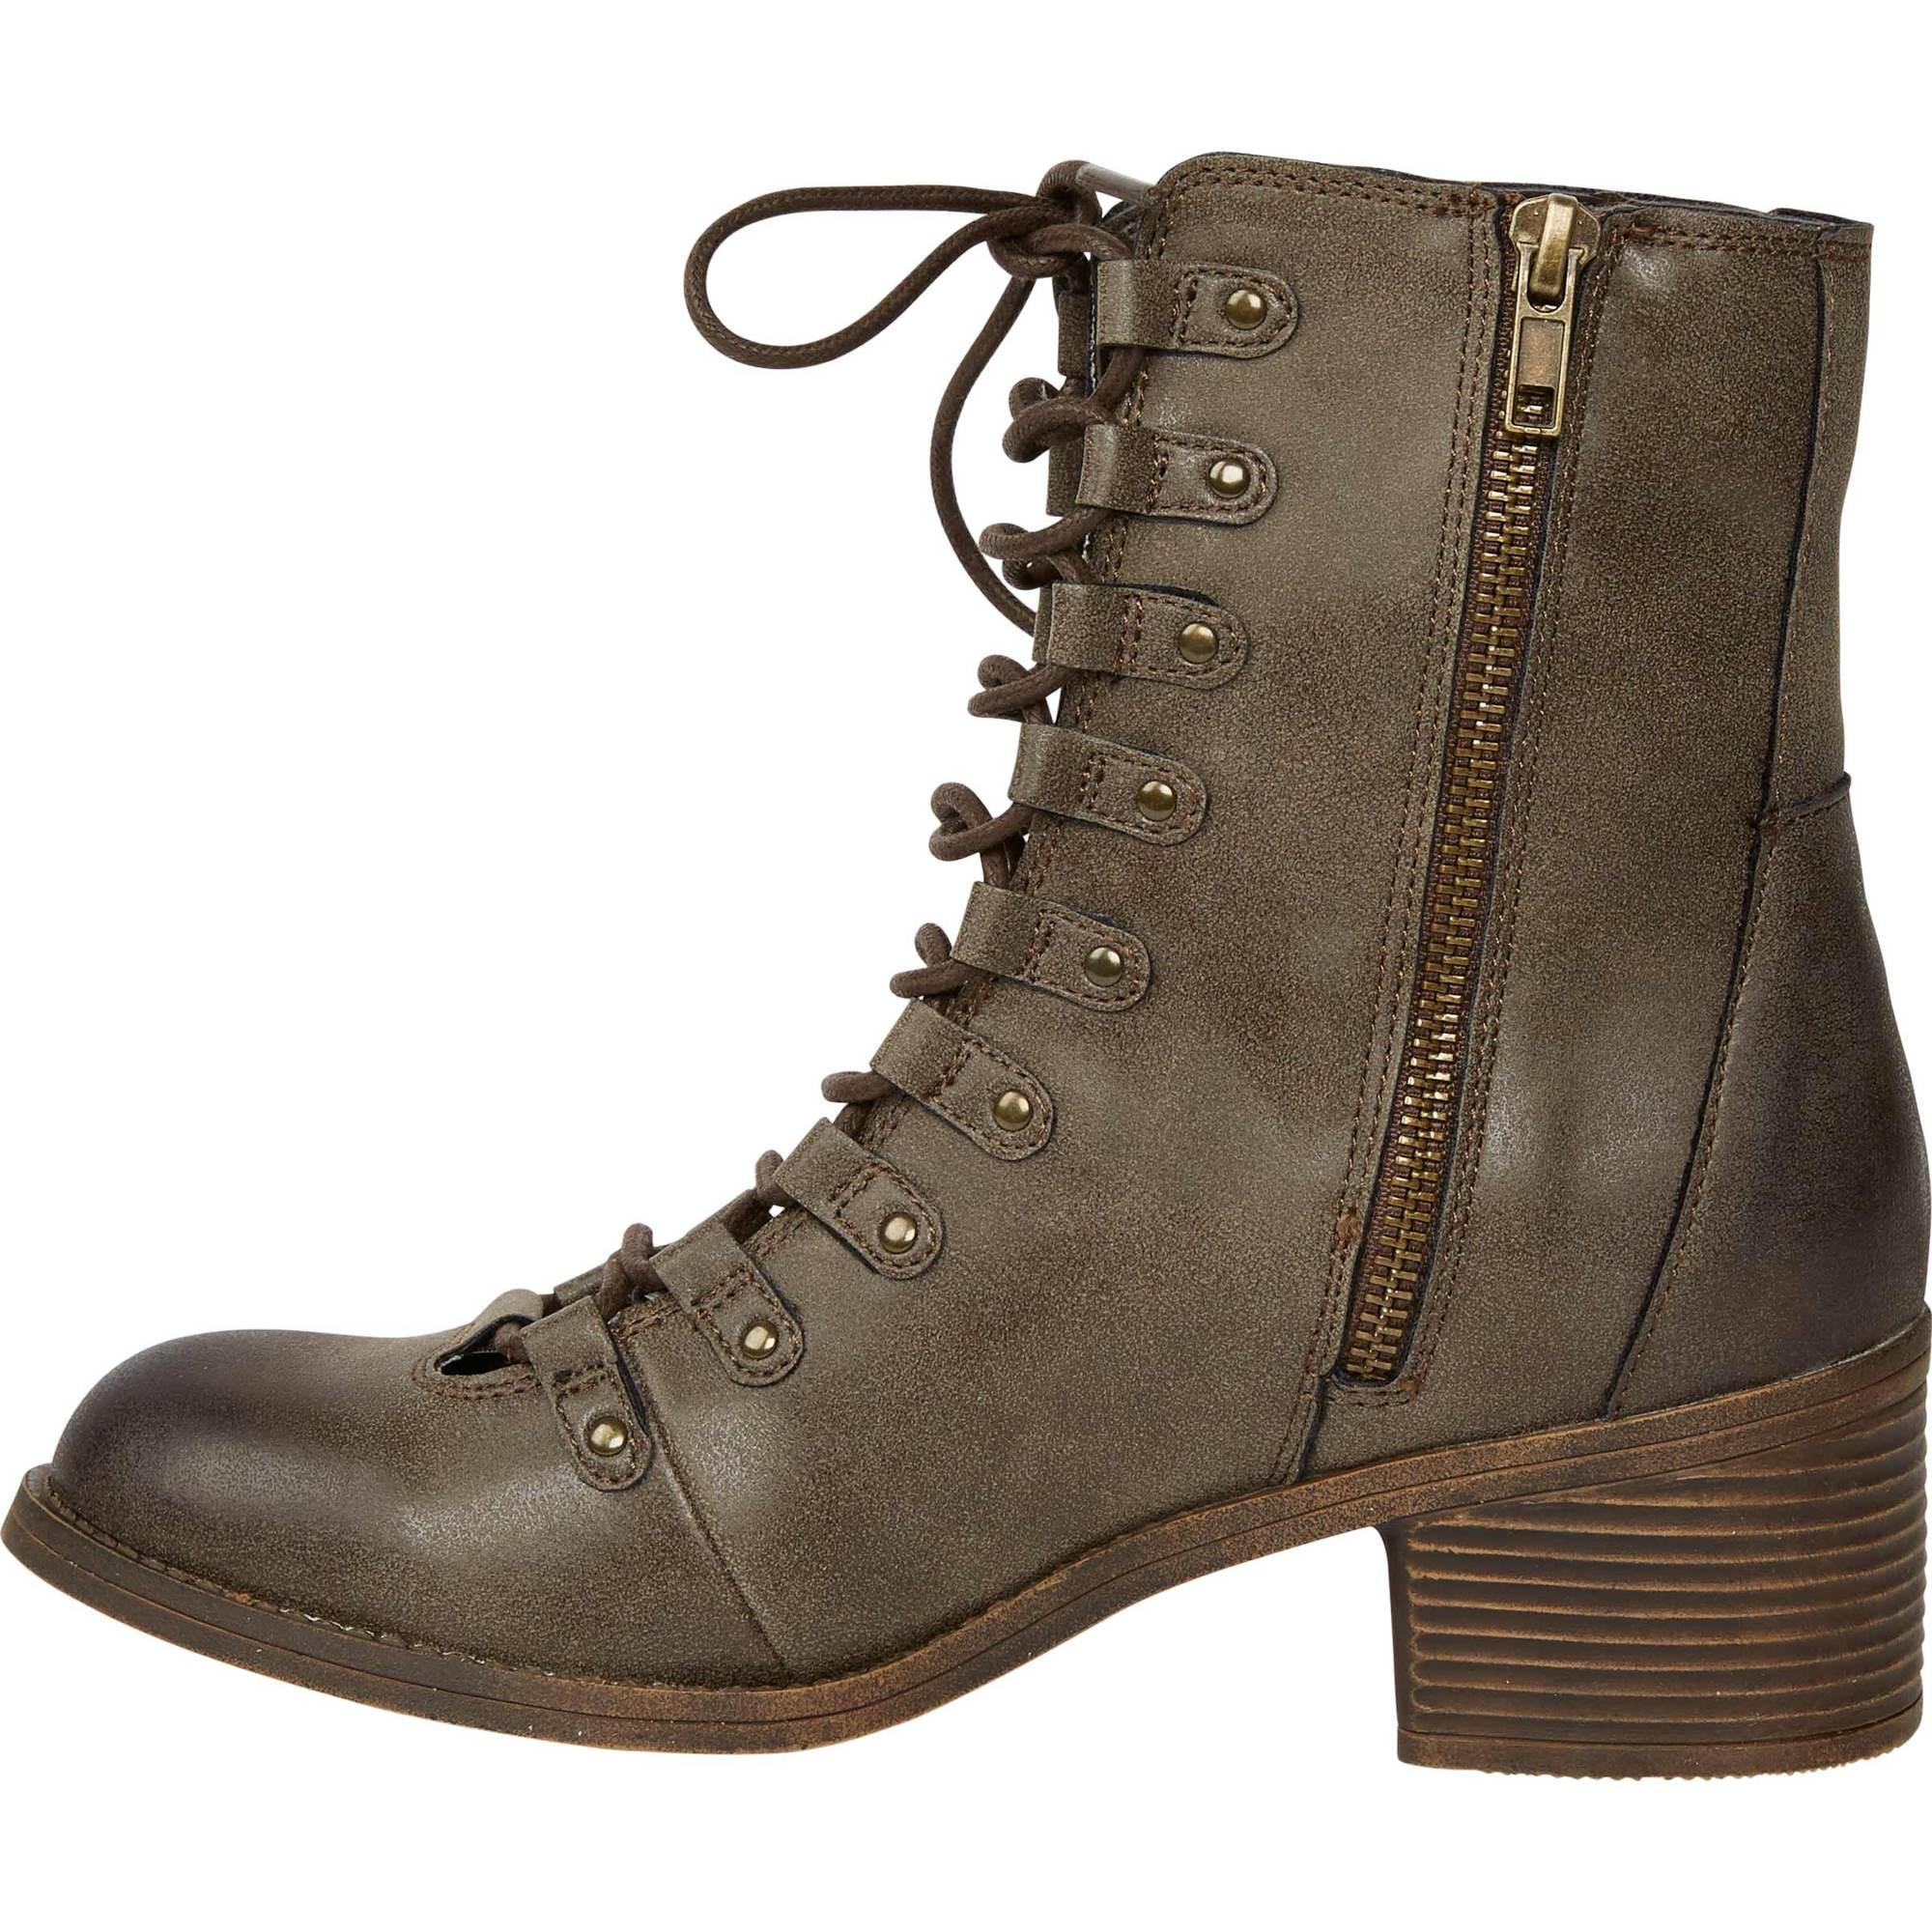 Lyst - Billabong March To The Sea Booties in Brown 0c0b1796d89a